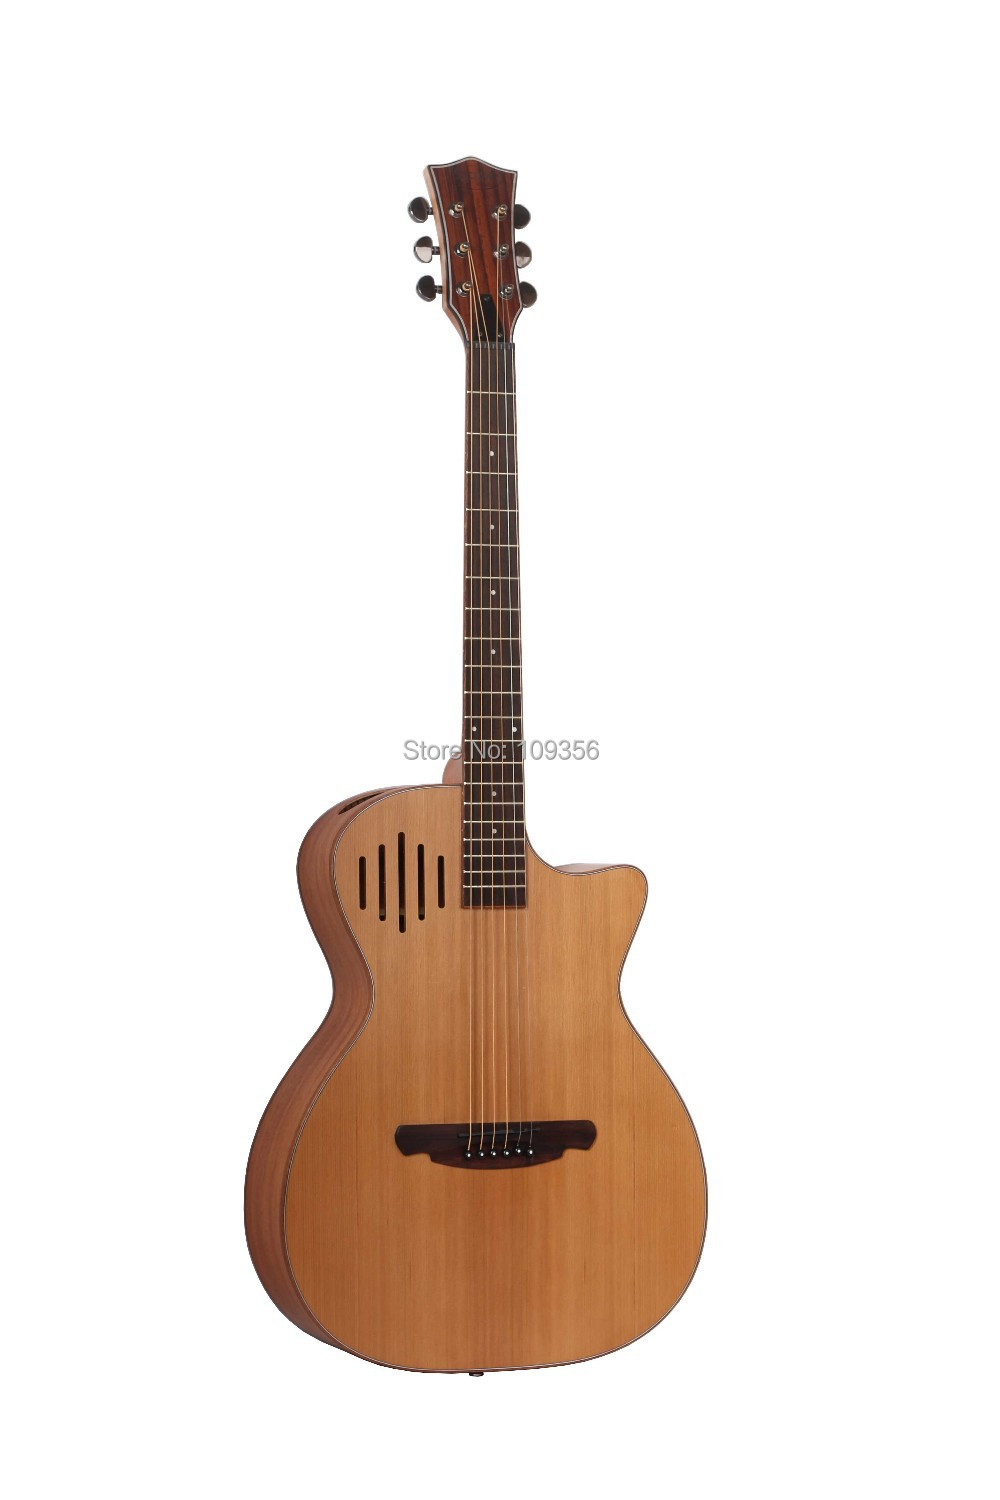 upright hole panel  acoustic-electric guitar 4 brand visiable EQ high quality new style sound very good